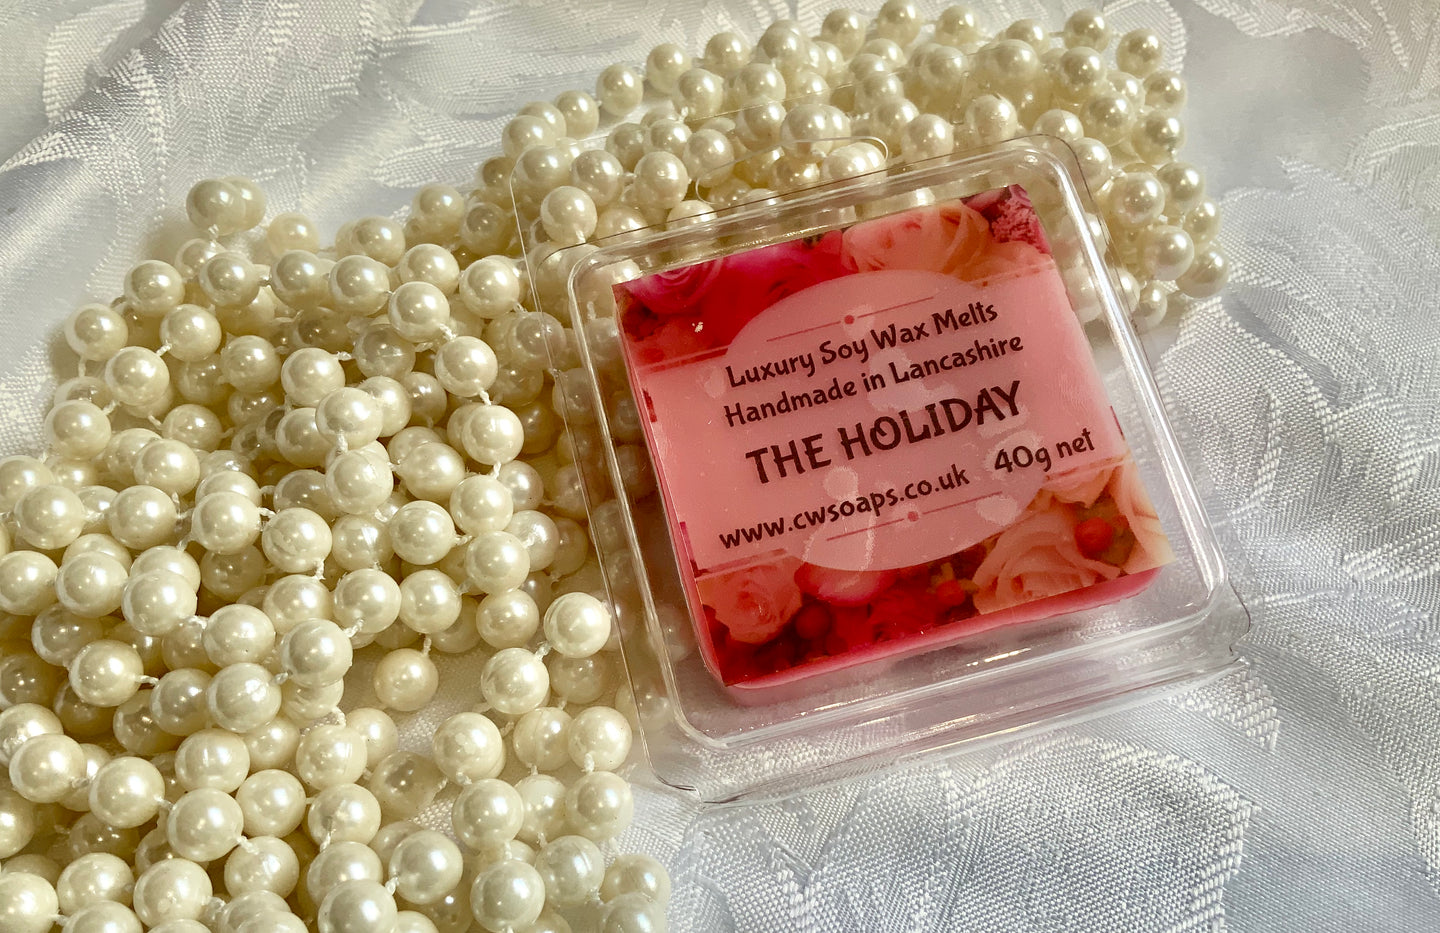 The Holiday Wax Melts